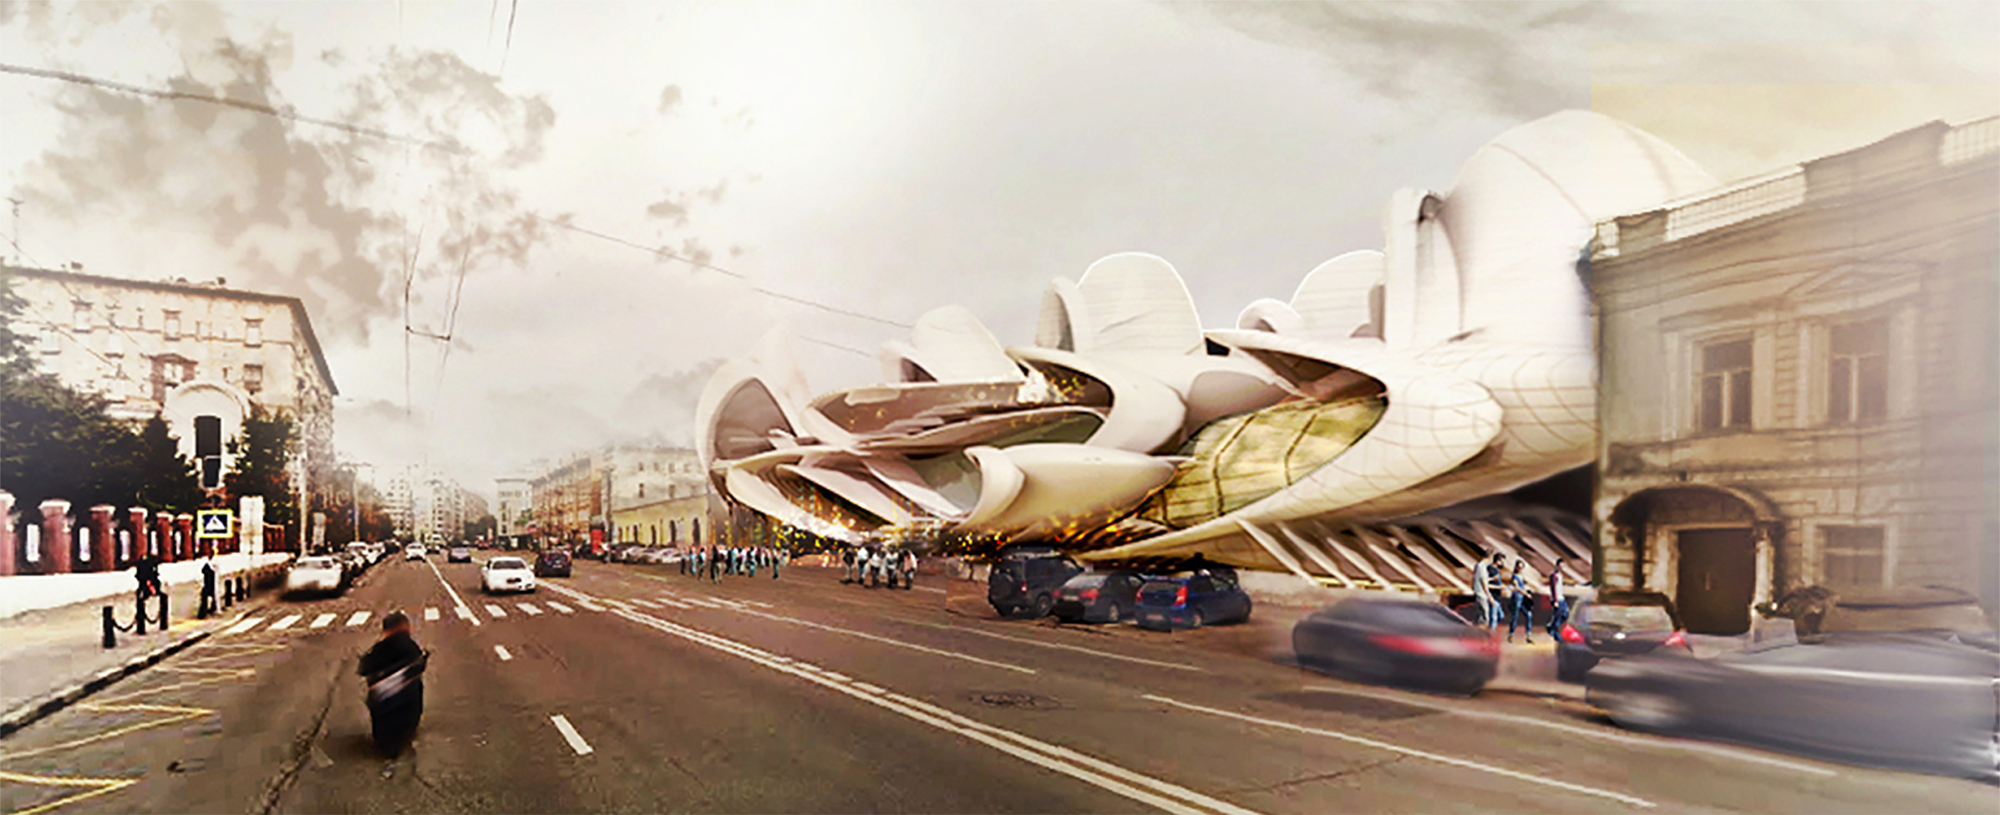 Gallery of Insect-Wing-Inspired Design Wins Moscow Circus